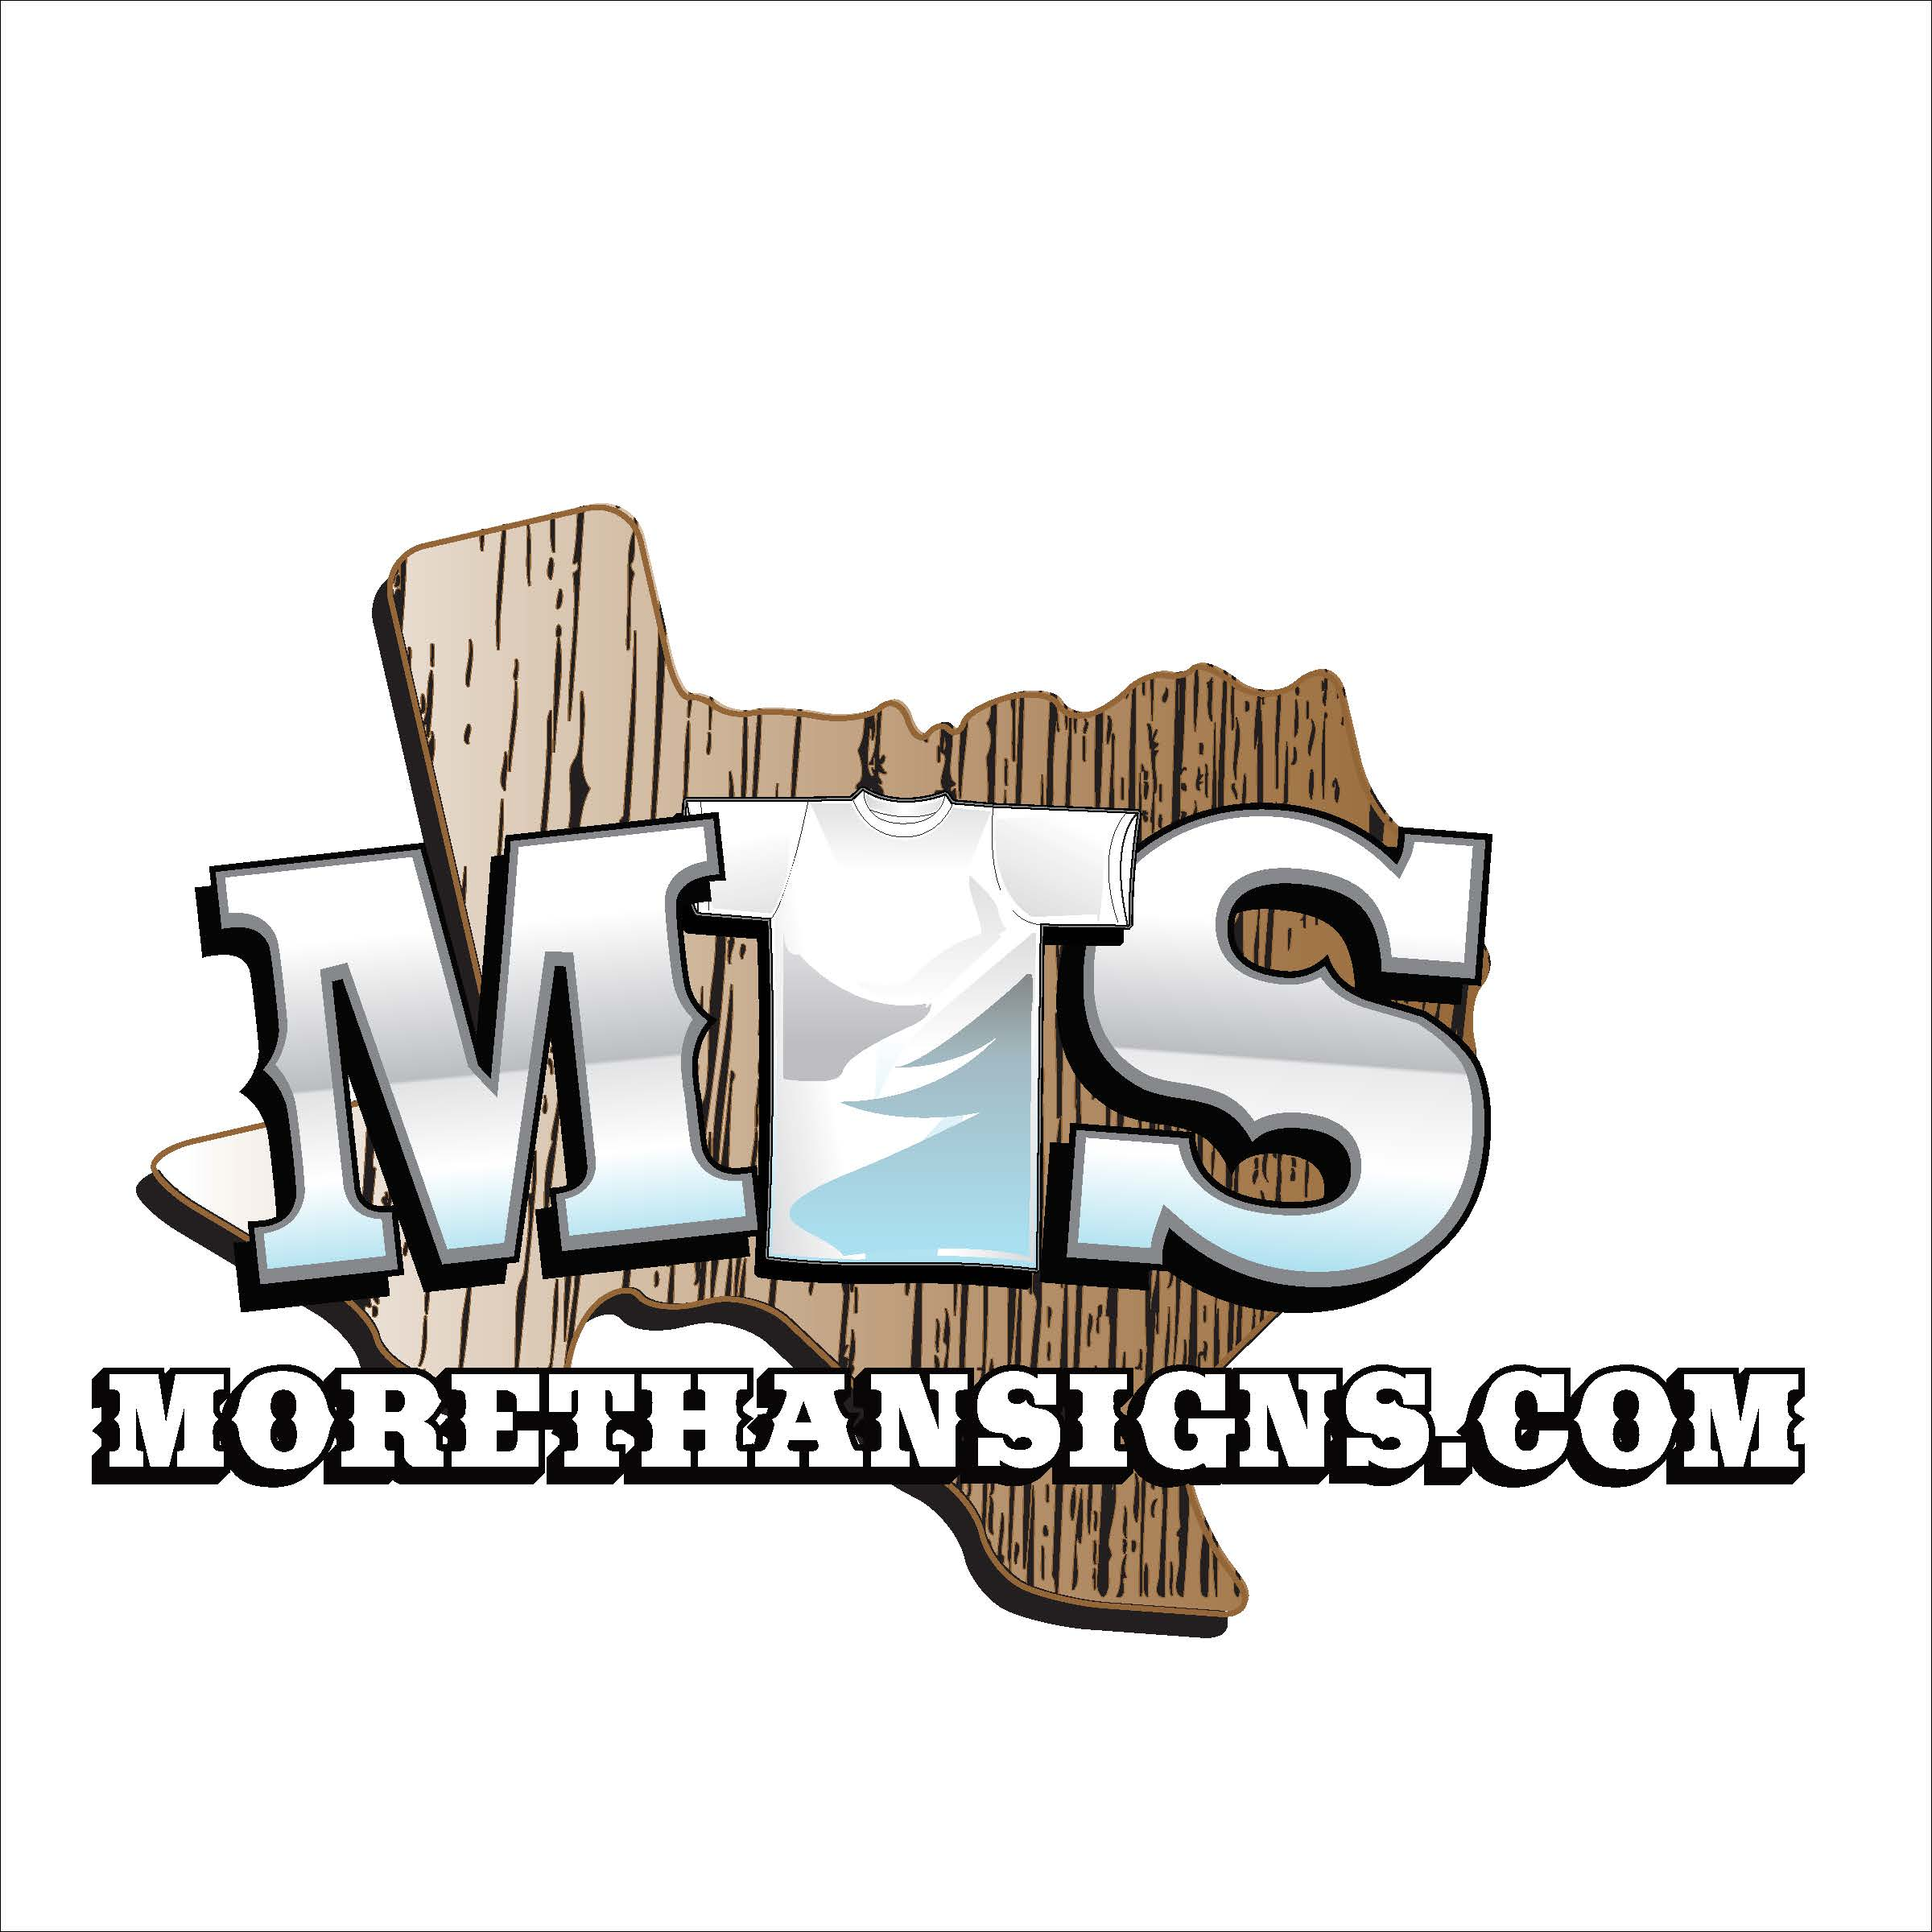 mts More than Signs logo.jpg